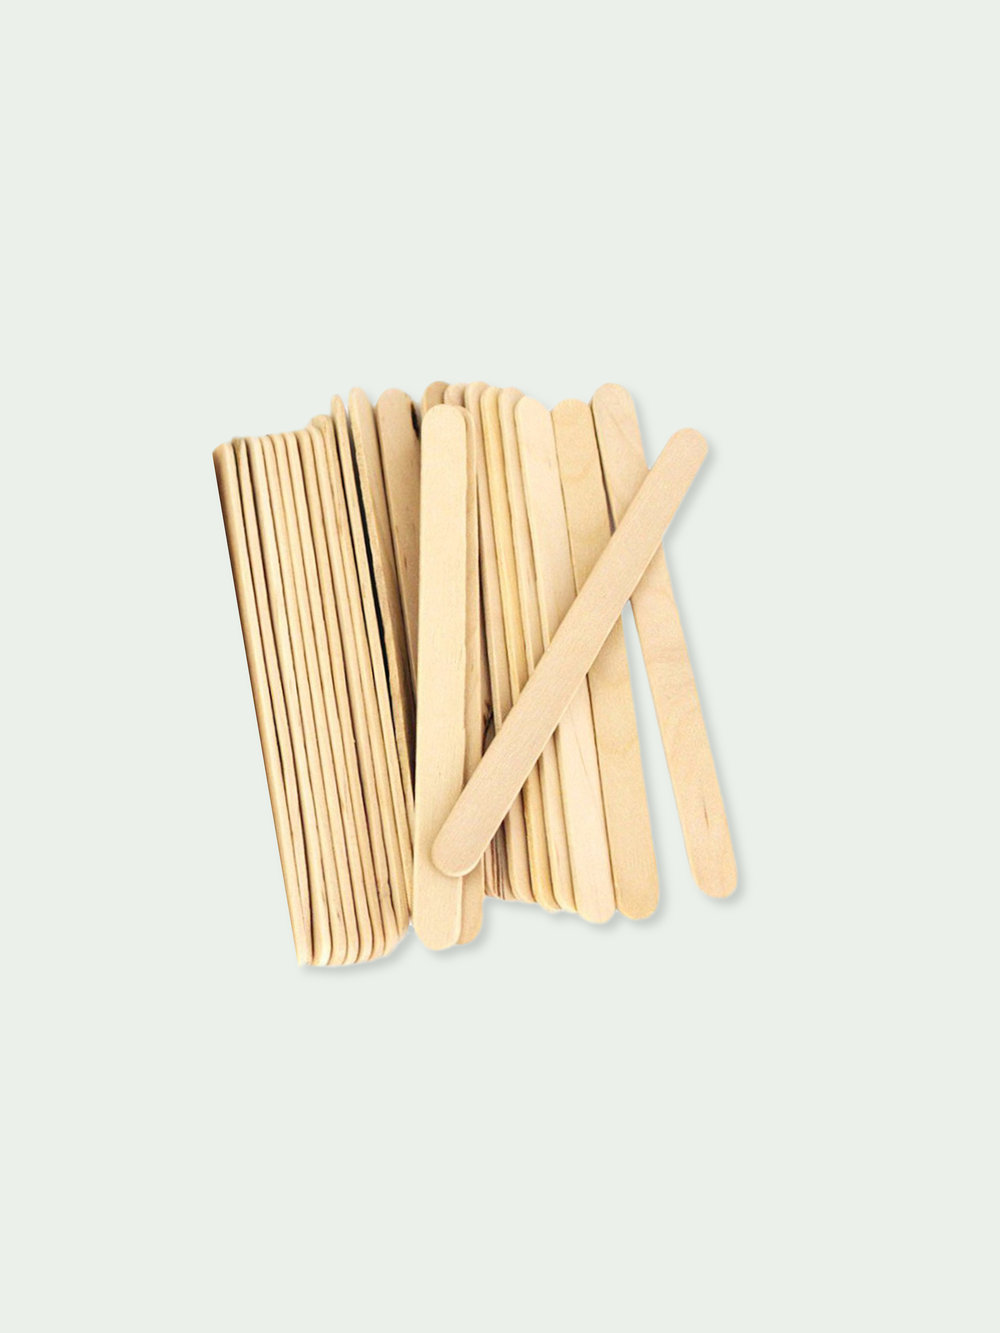 Popsicle Sticks - Gotta have more popsicles but don't have enough popsicle sticks? I got you covered! Here's a pack of 200 popsicle sticks to make a plethora of cold summer treats for the whole family to enjoy.